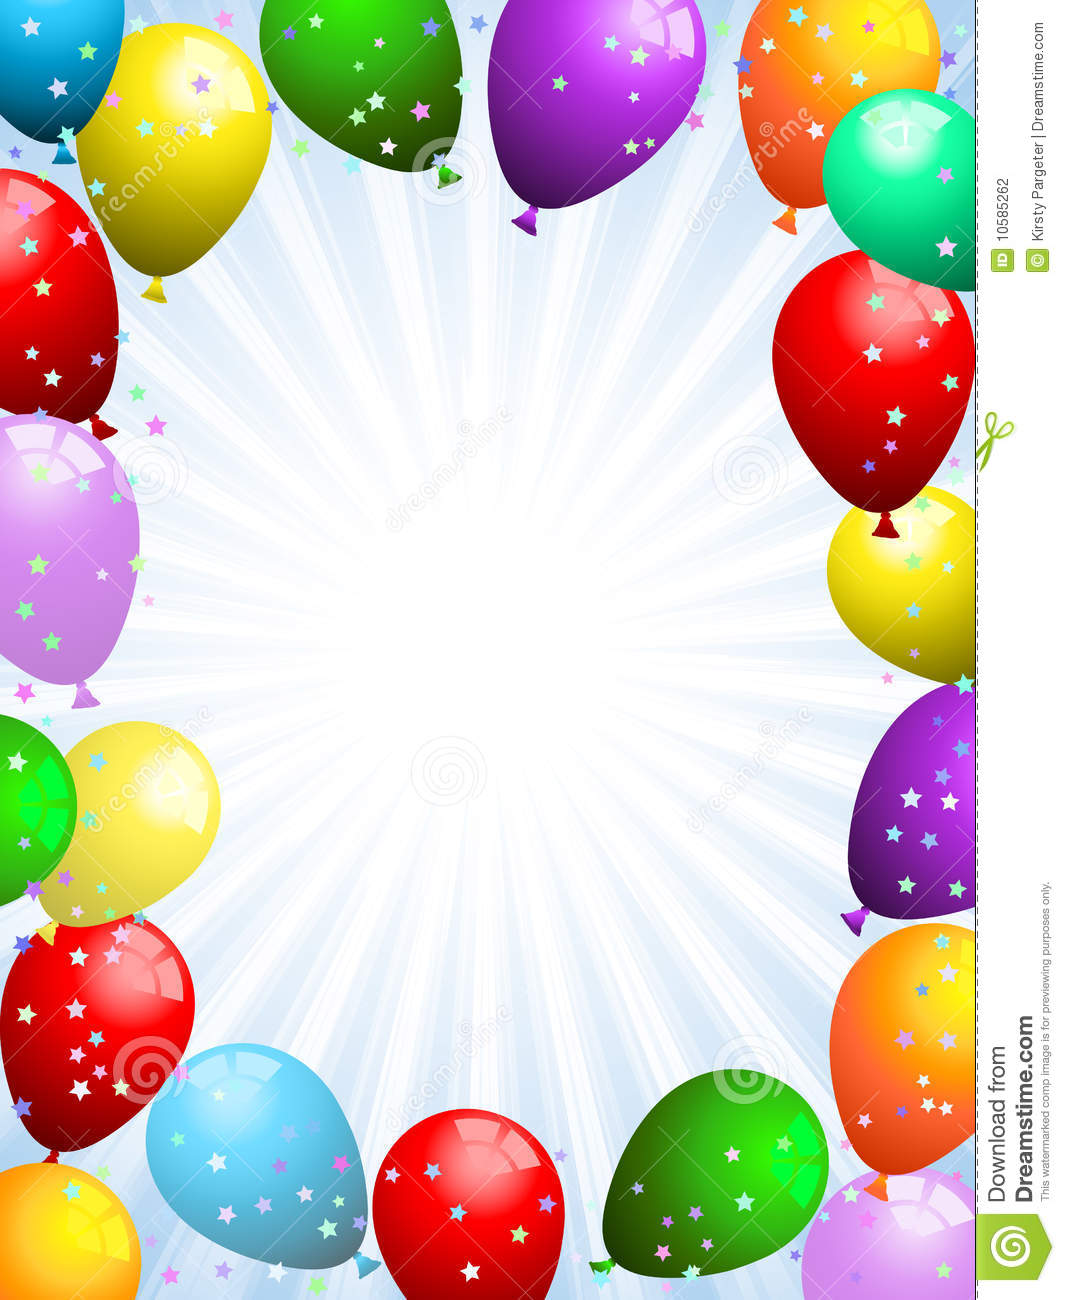 Balloons And Confetti Stock Photography - Image: 10585262